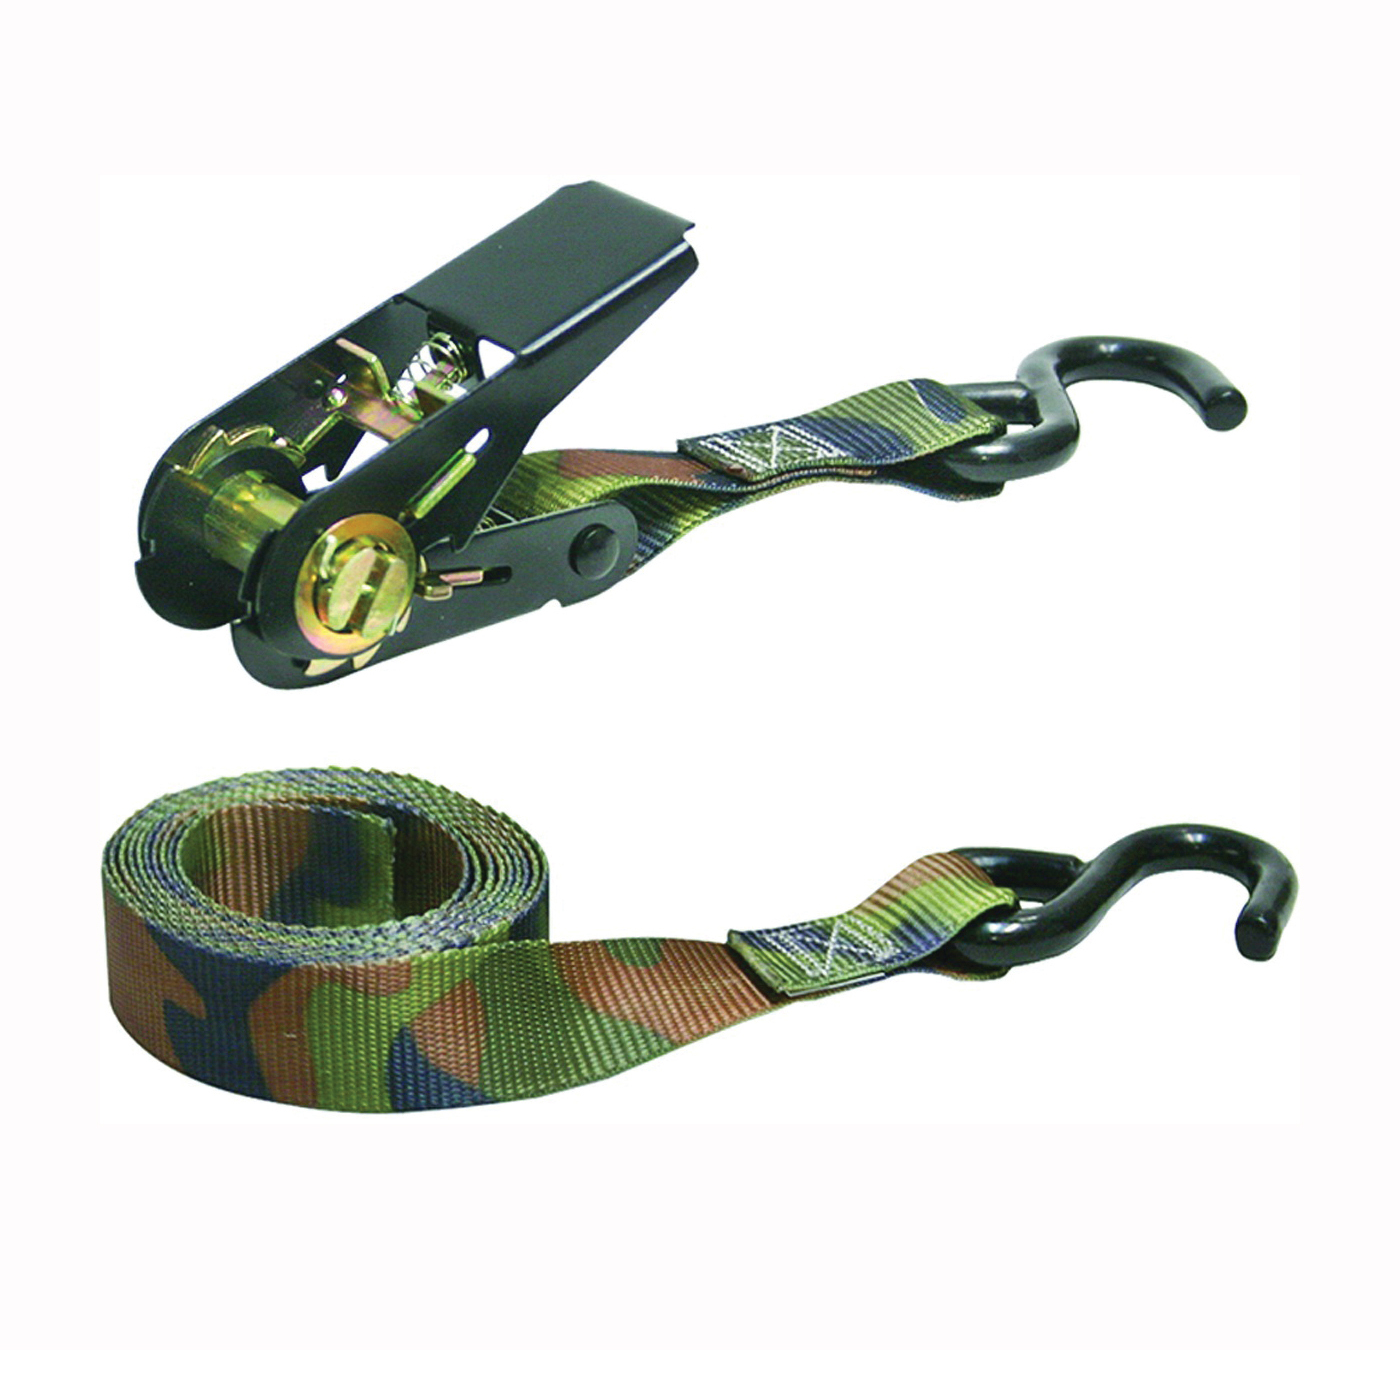 Picture of KEEPER 03508-V Tie-Down, 1 in W, 8 ft L, Camouflage, 400 lb, S-Hook End Fitting